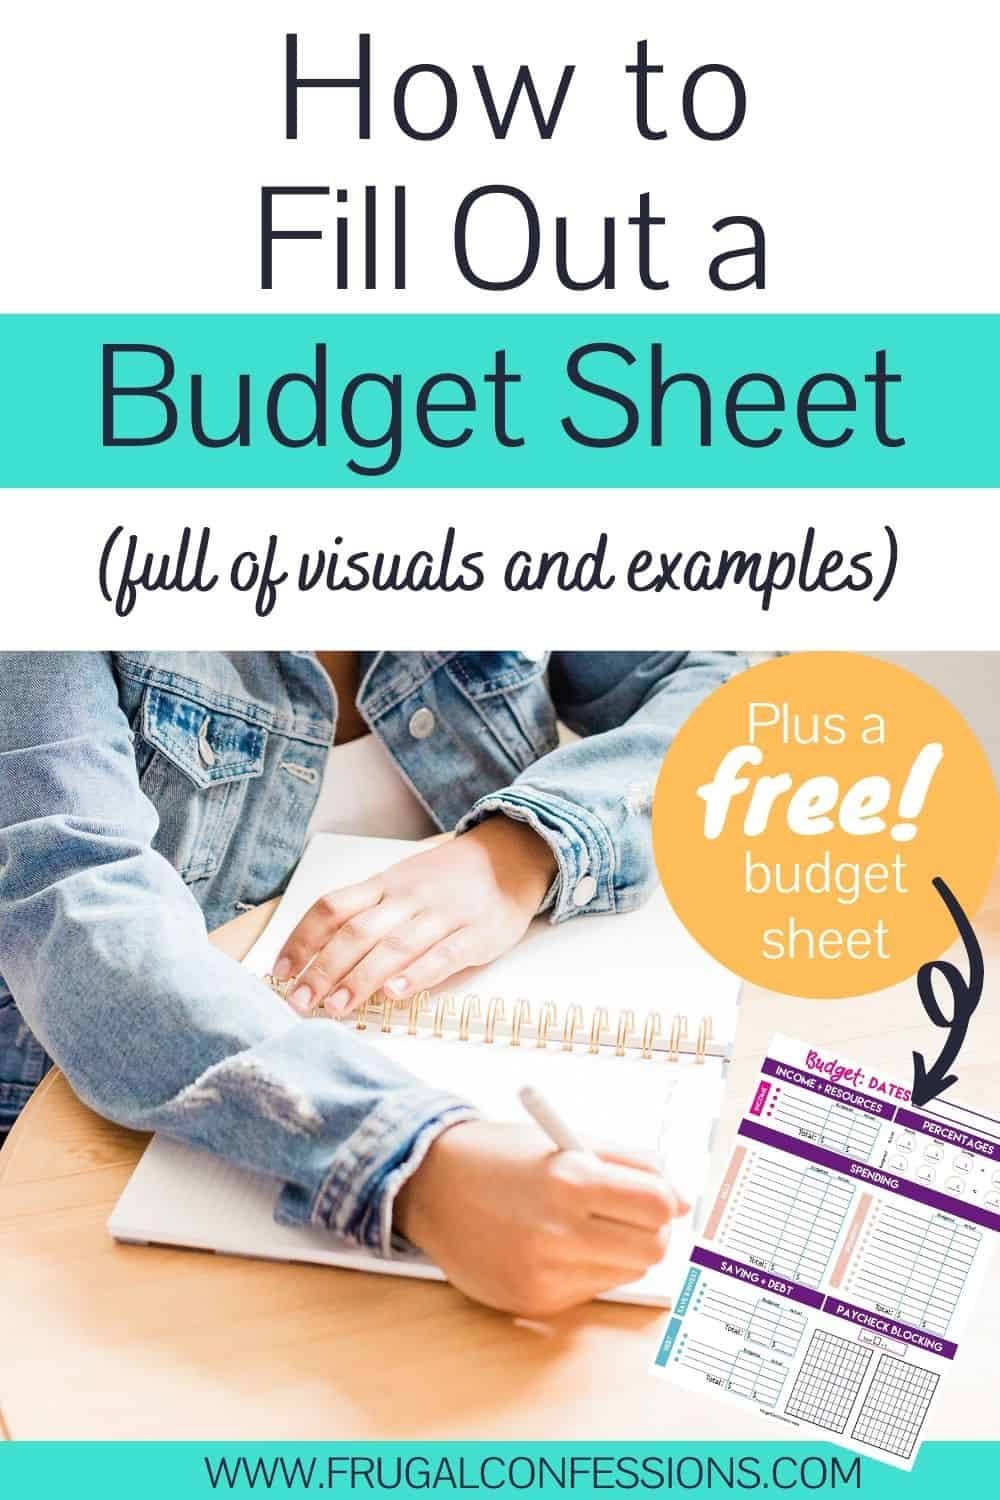 """woman writing on a budget sheet at wooden desk, text overlay """"how to fill out a budget sheet - free budget sheet"""""""